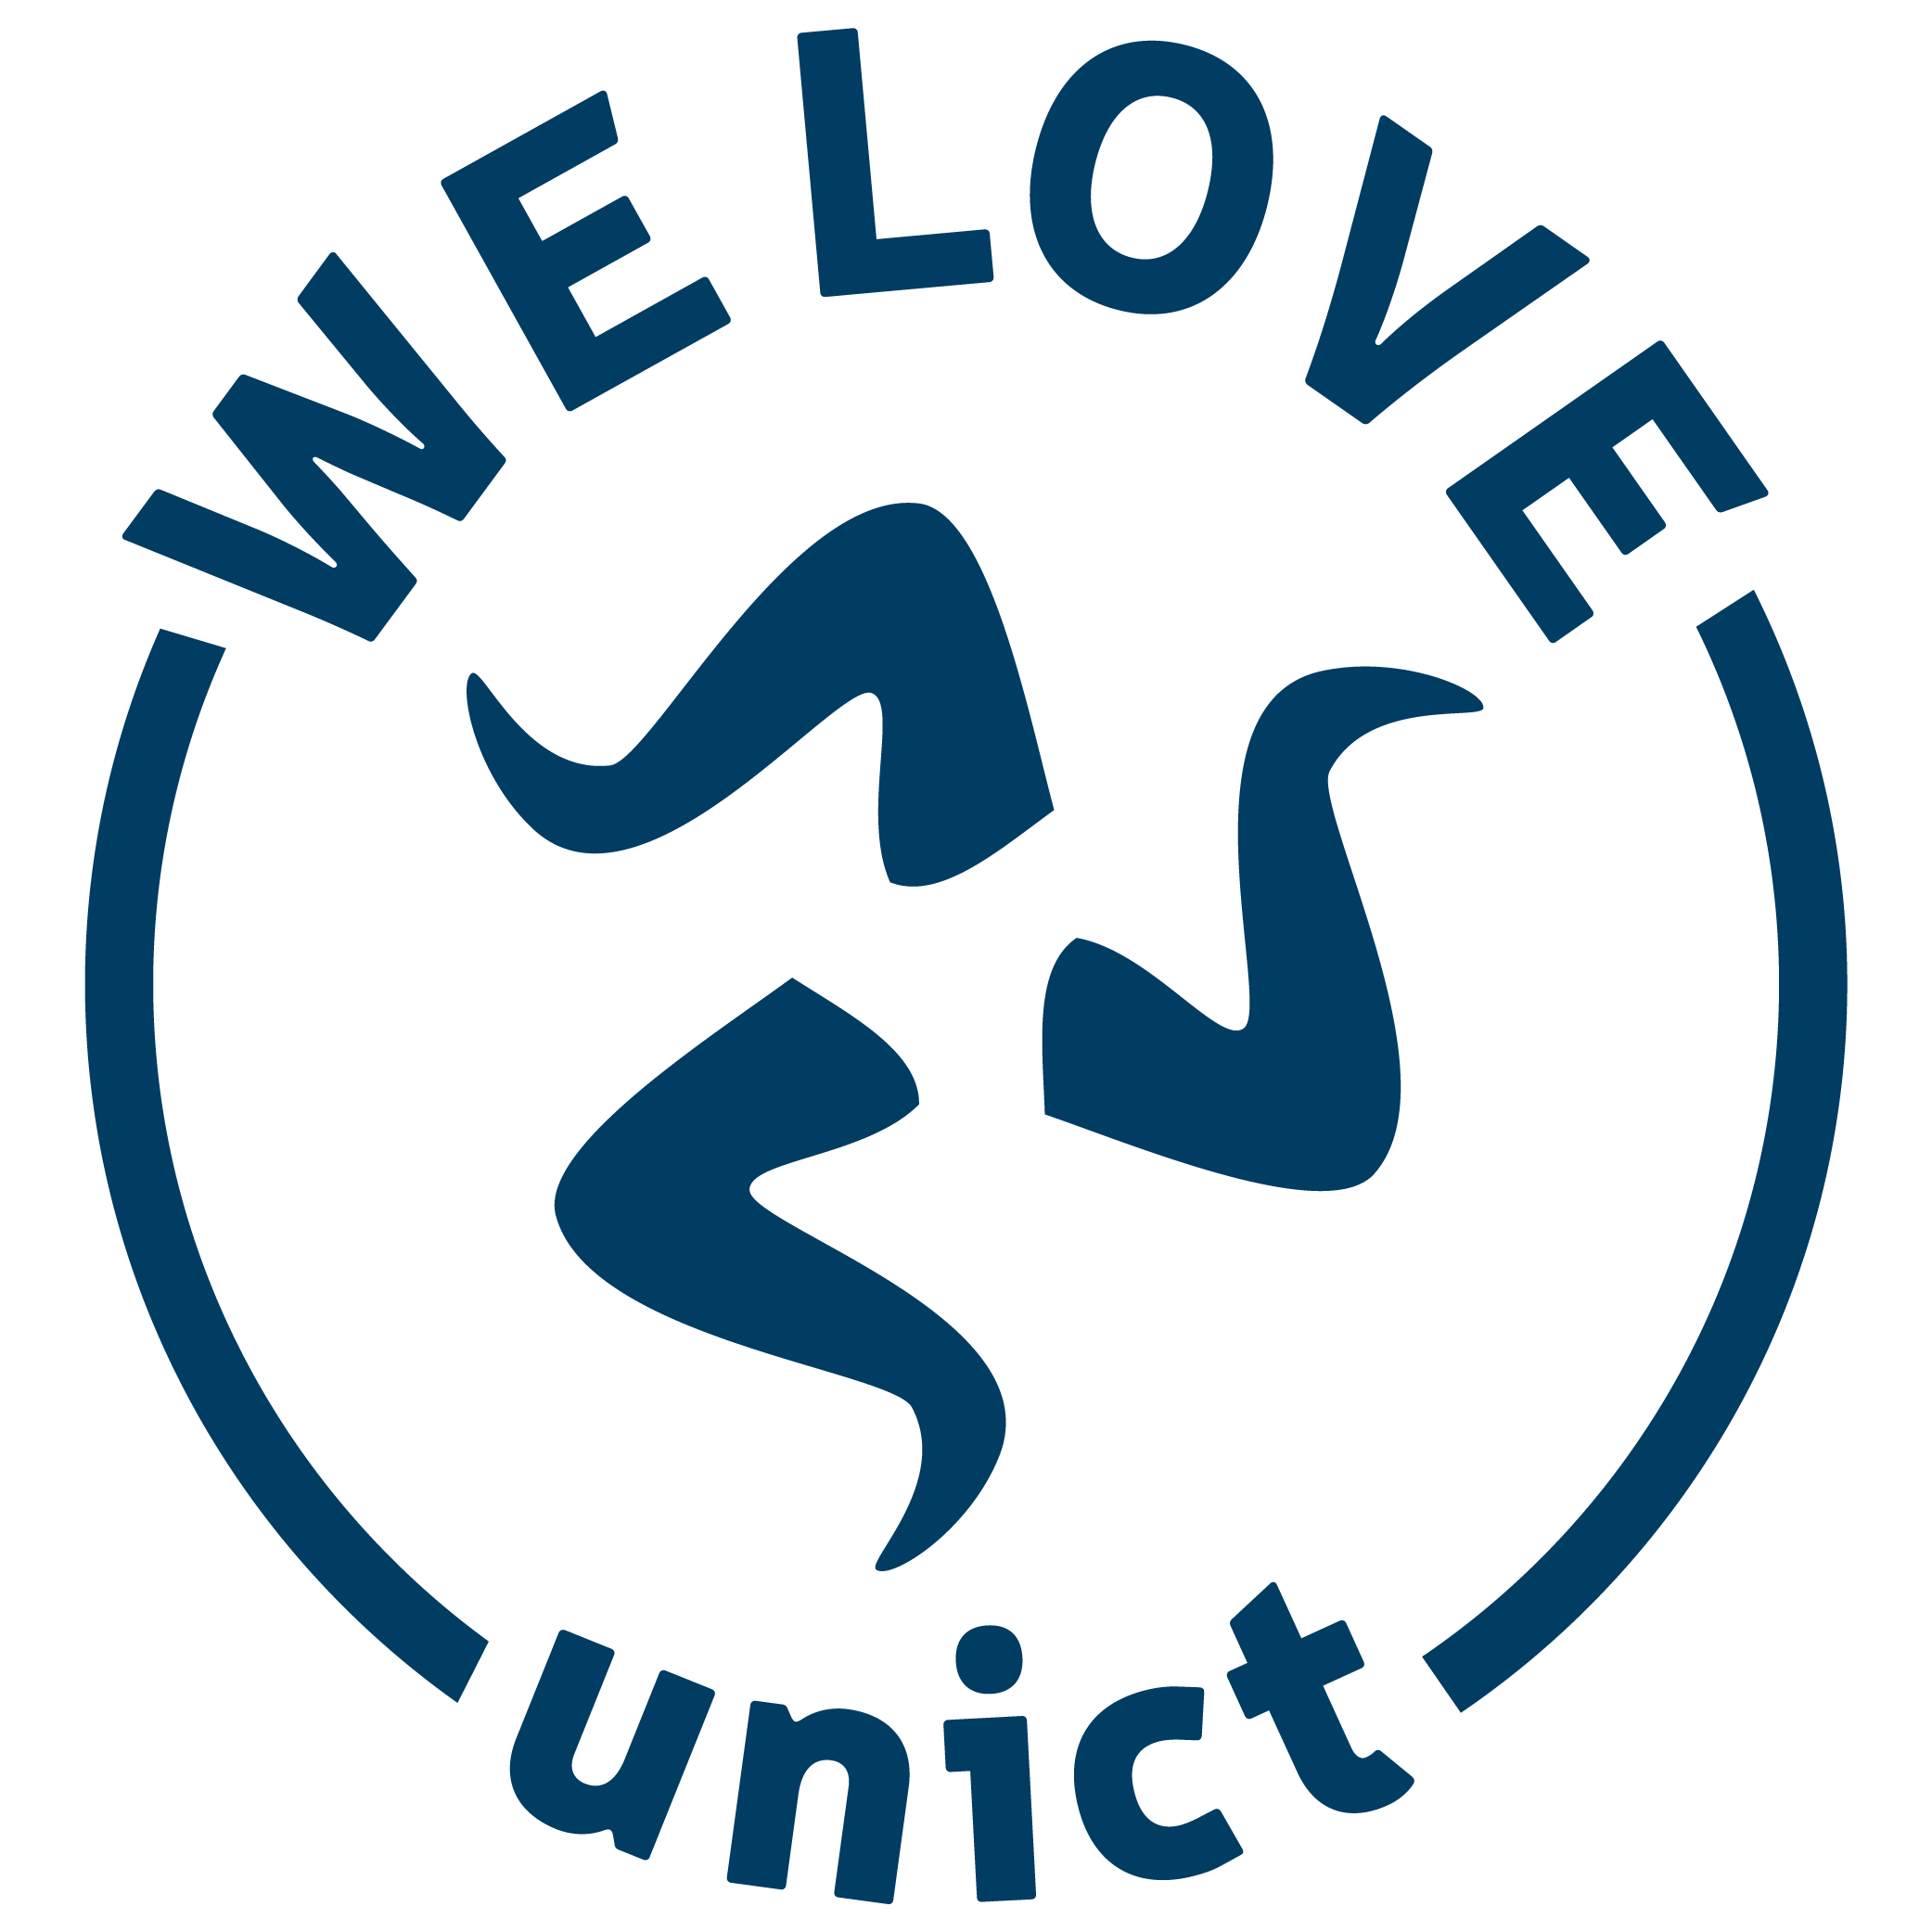 We Love Unict